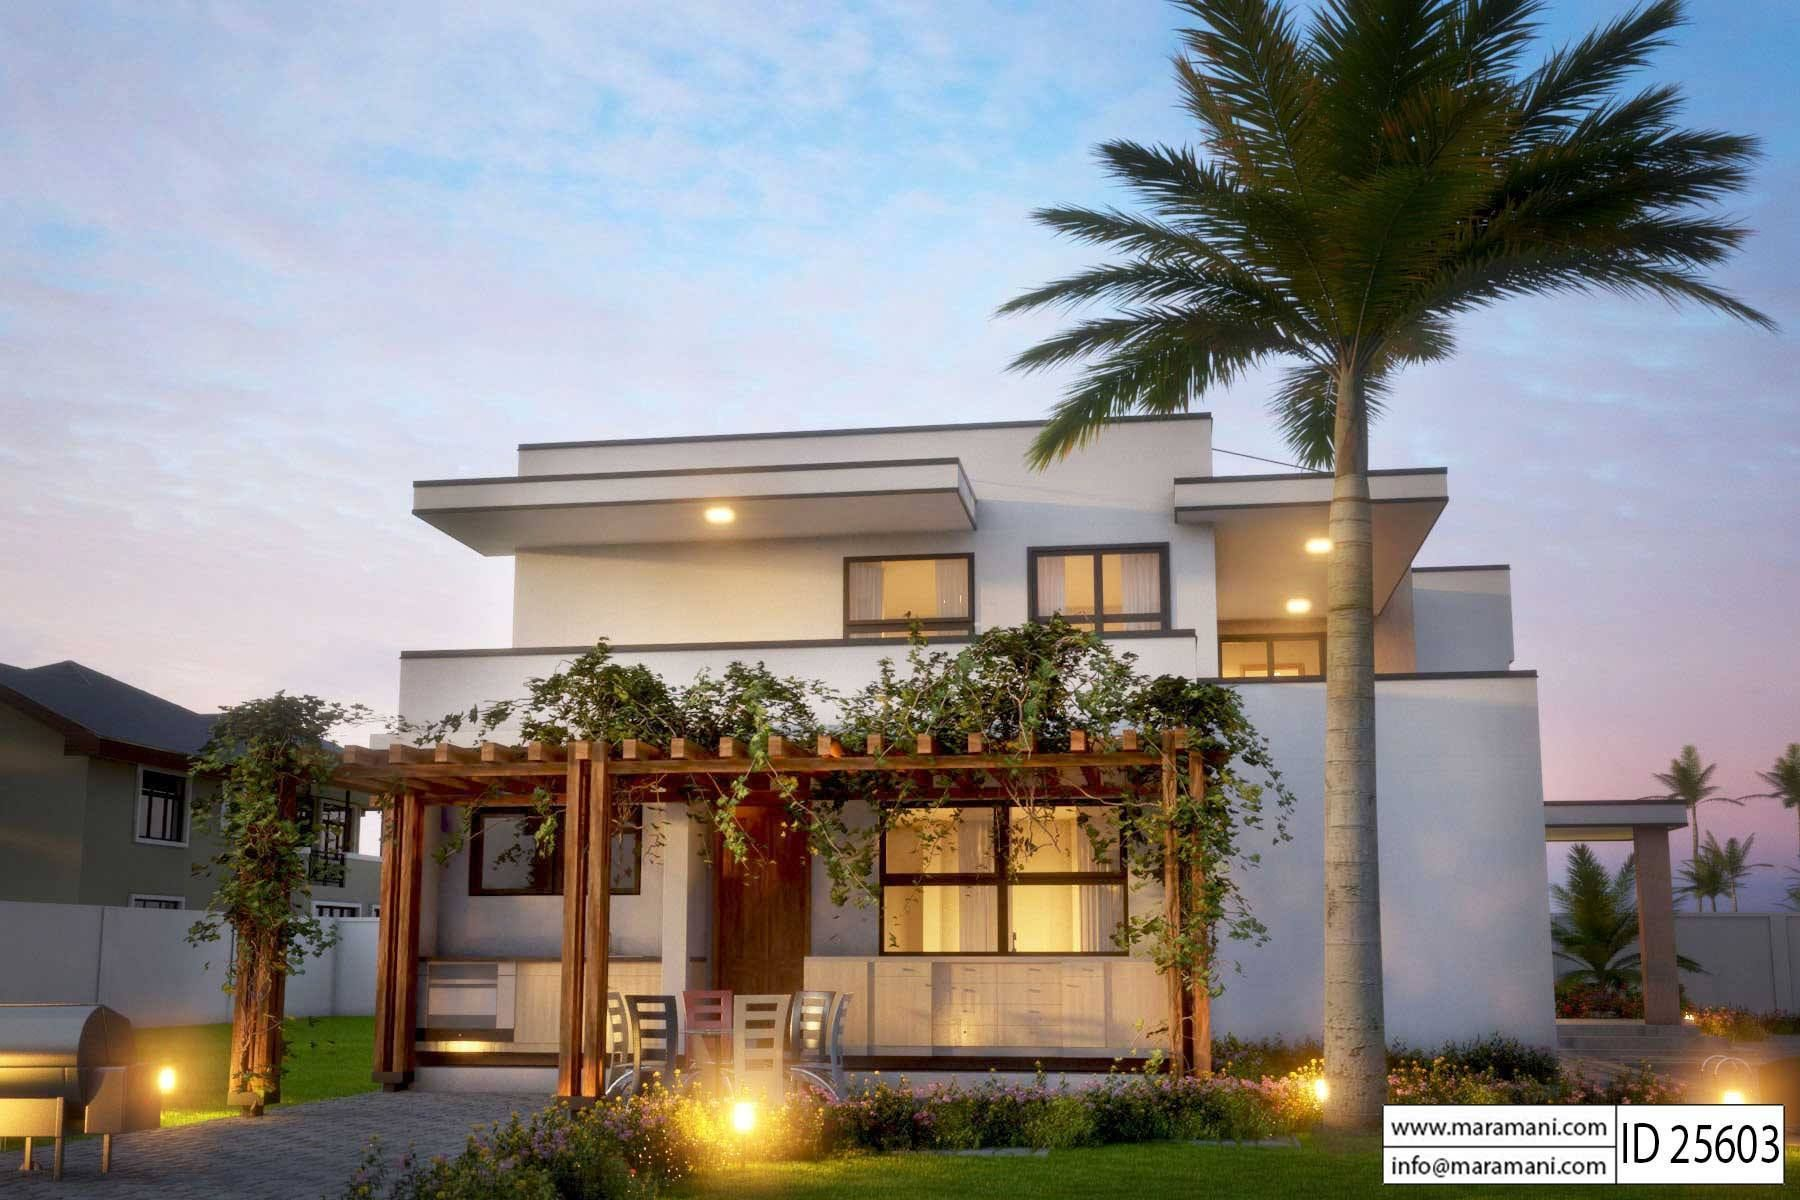 Modern 5 Bedroom House Design Id 25603 Floor Plans By Maramani House Design 5 Bedroom House Contemporary House Plans